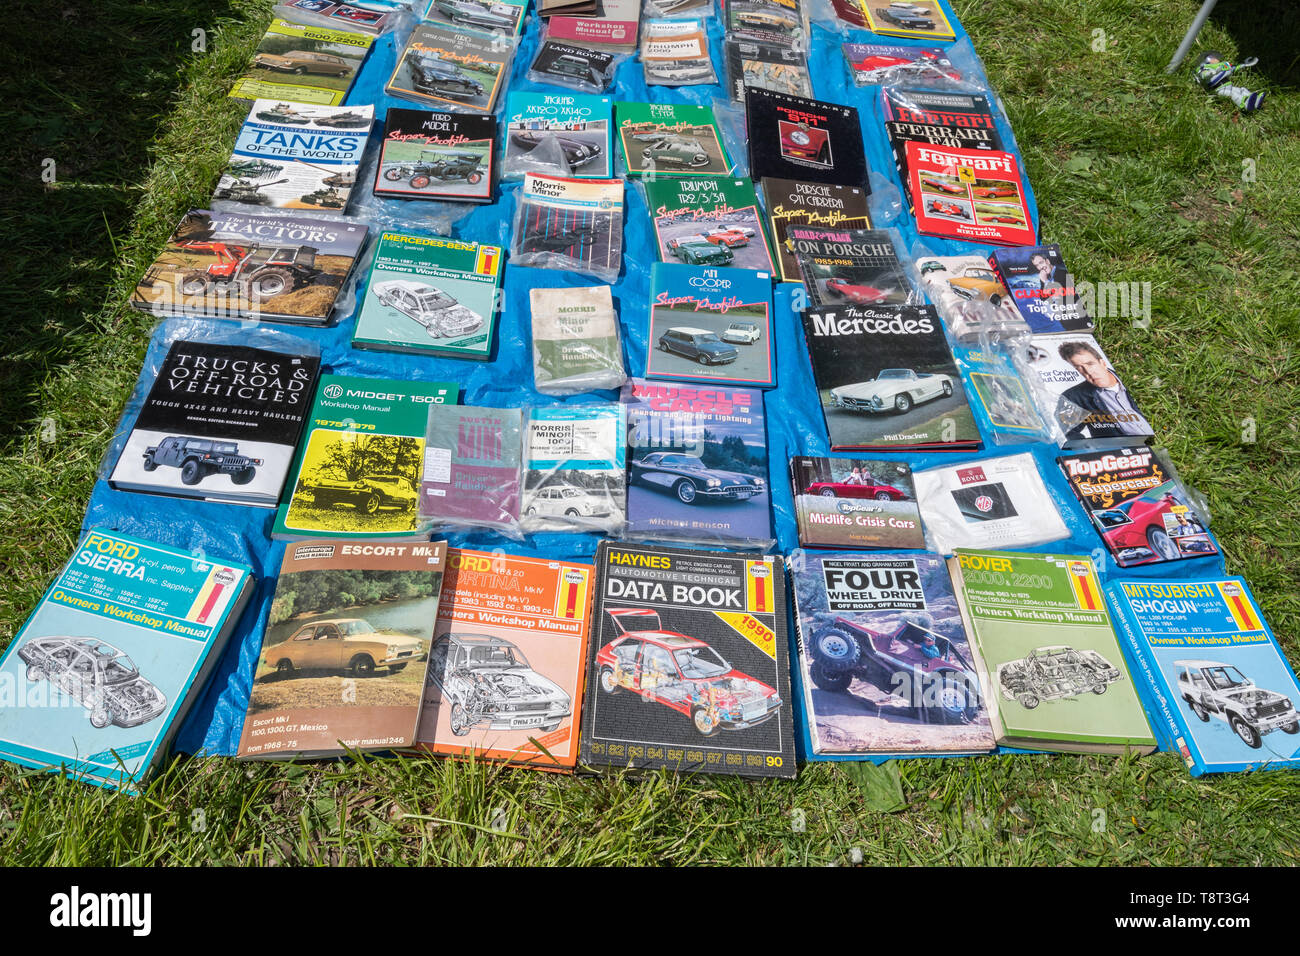 haynes-manuals-and-other-books-about-cars-and-vehicles-laid-out-on-the-ground-for-sale-on-a-trade-stand-at-a-uk-car-show-T8T3G4.jpg